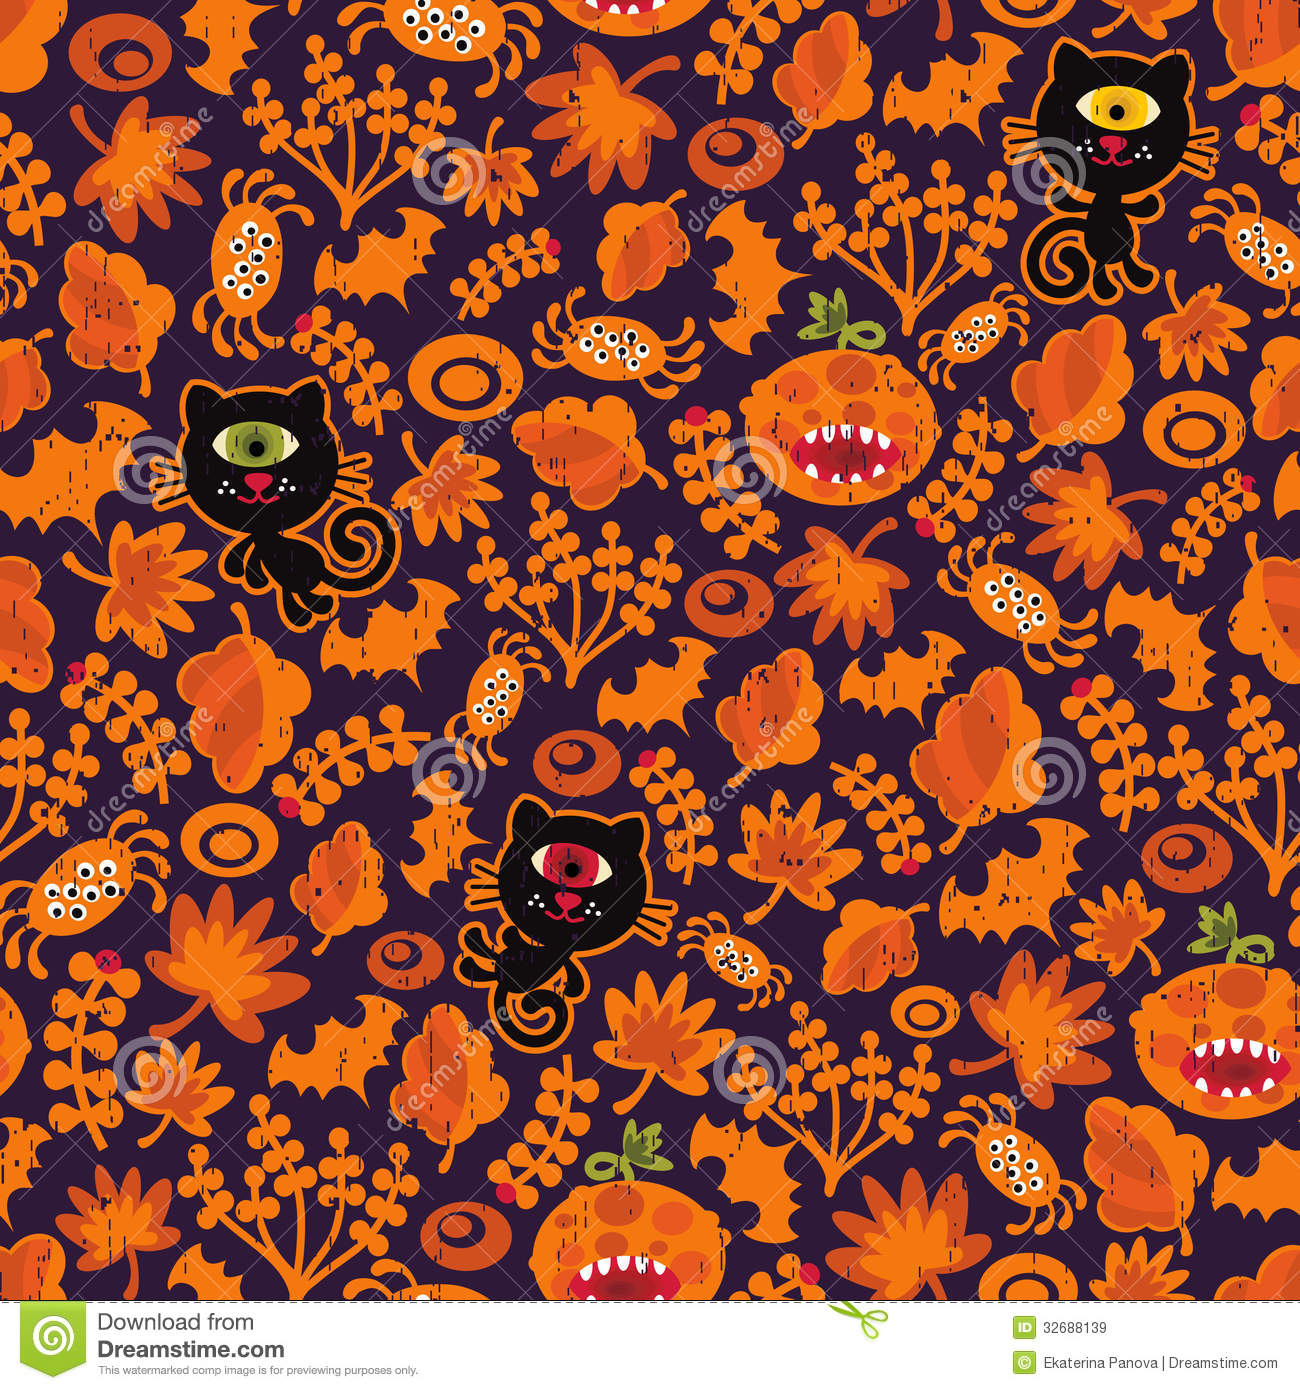 Beautiful Wallpaper Halloween Gold - seamless-halloween-texture-black-cat-vector-pattern-your-background-32688139  Picture_458945.jpg